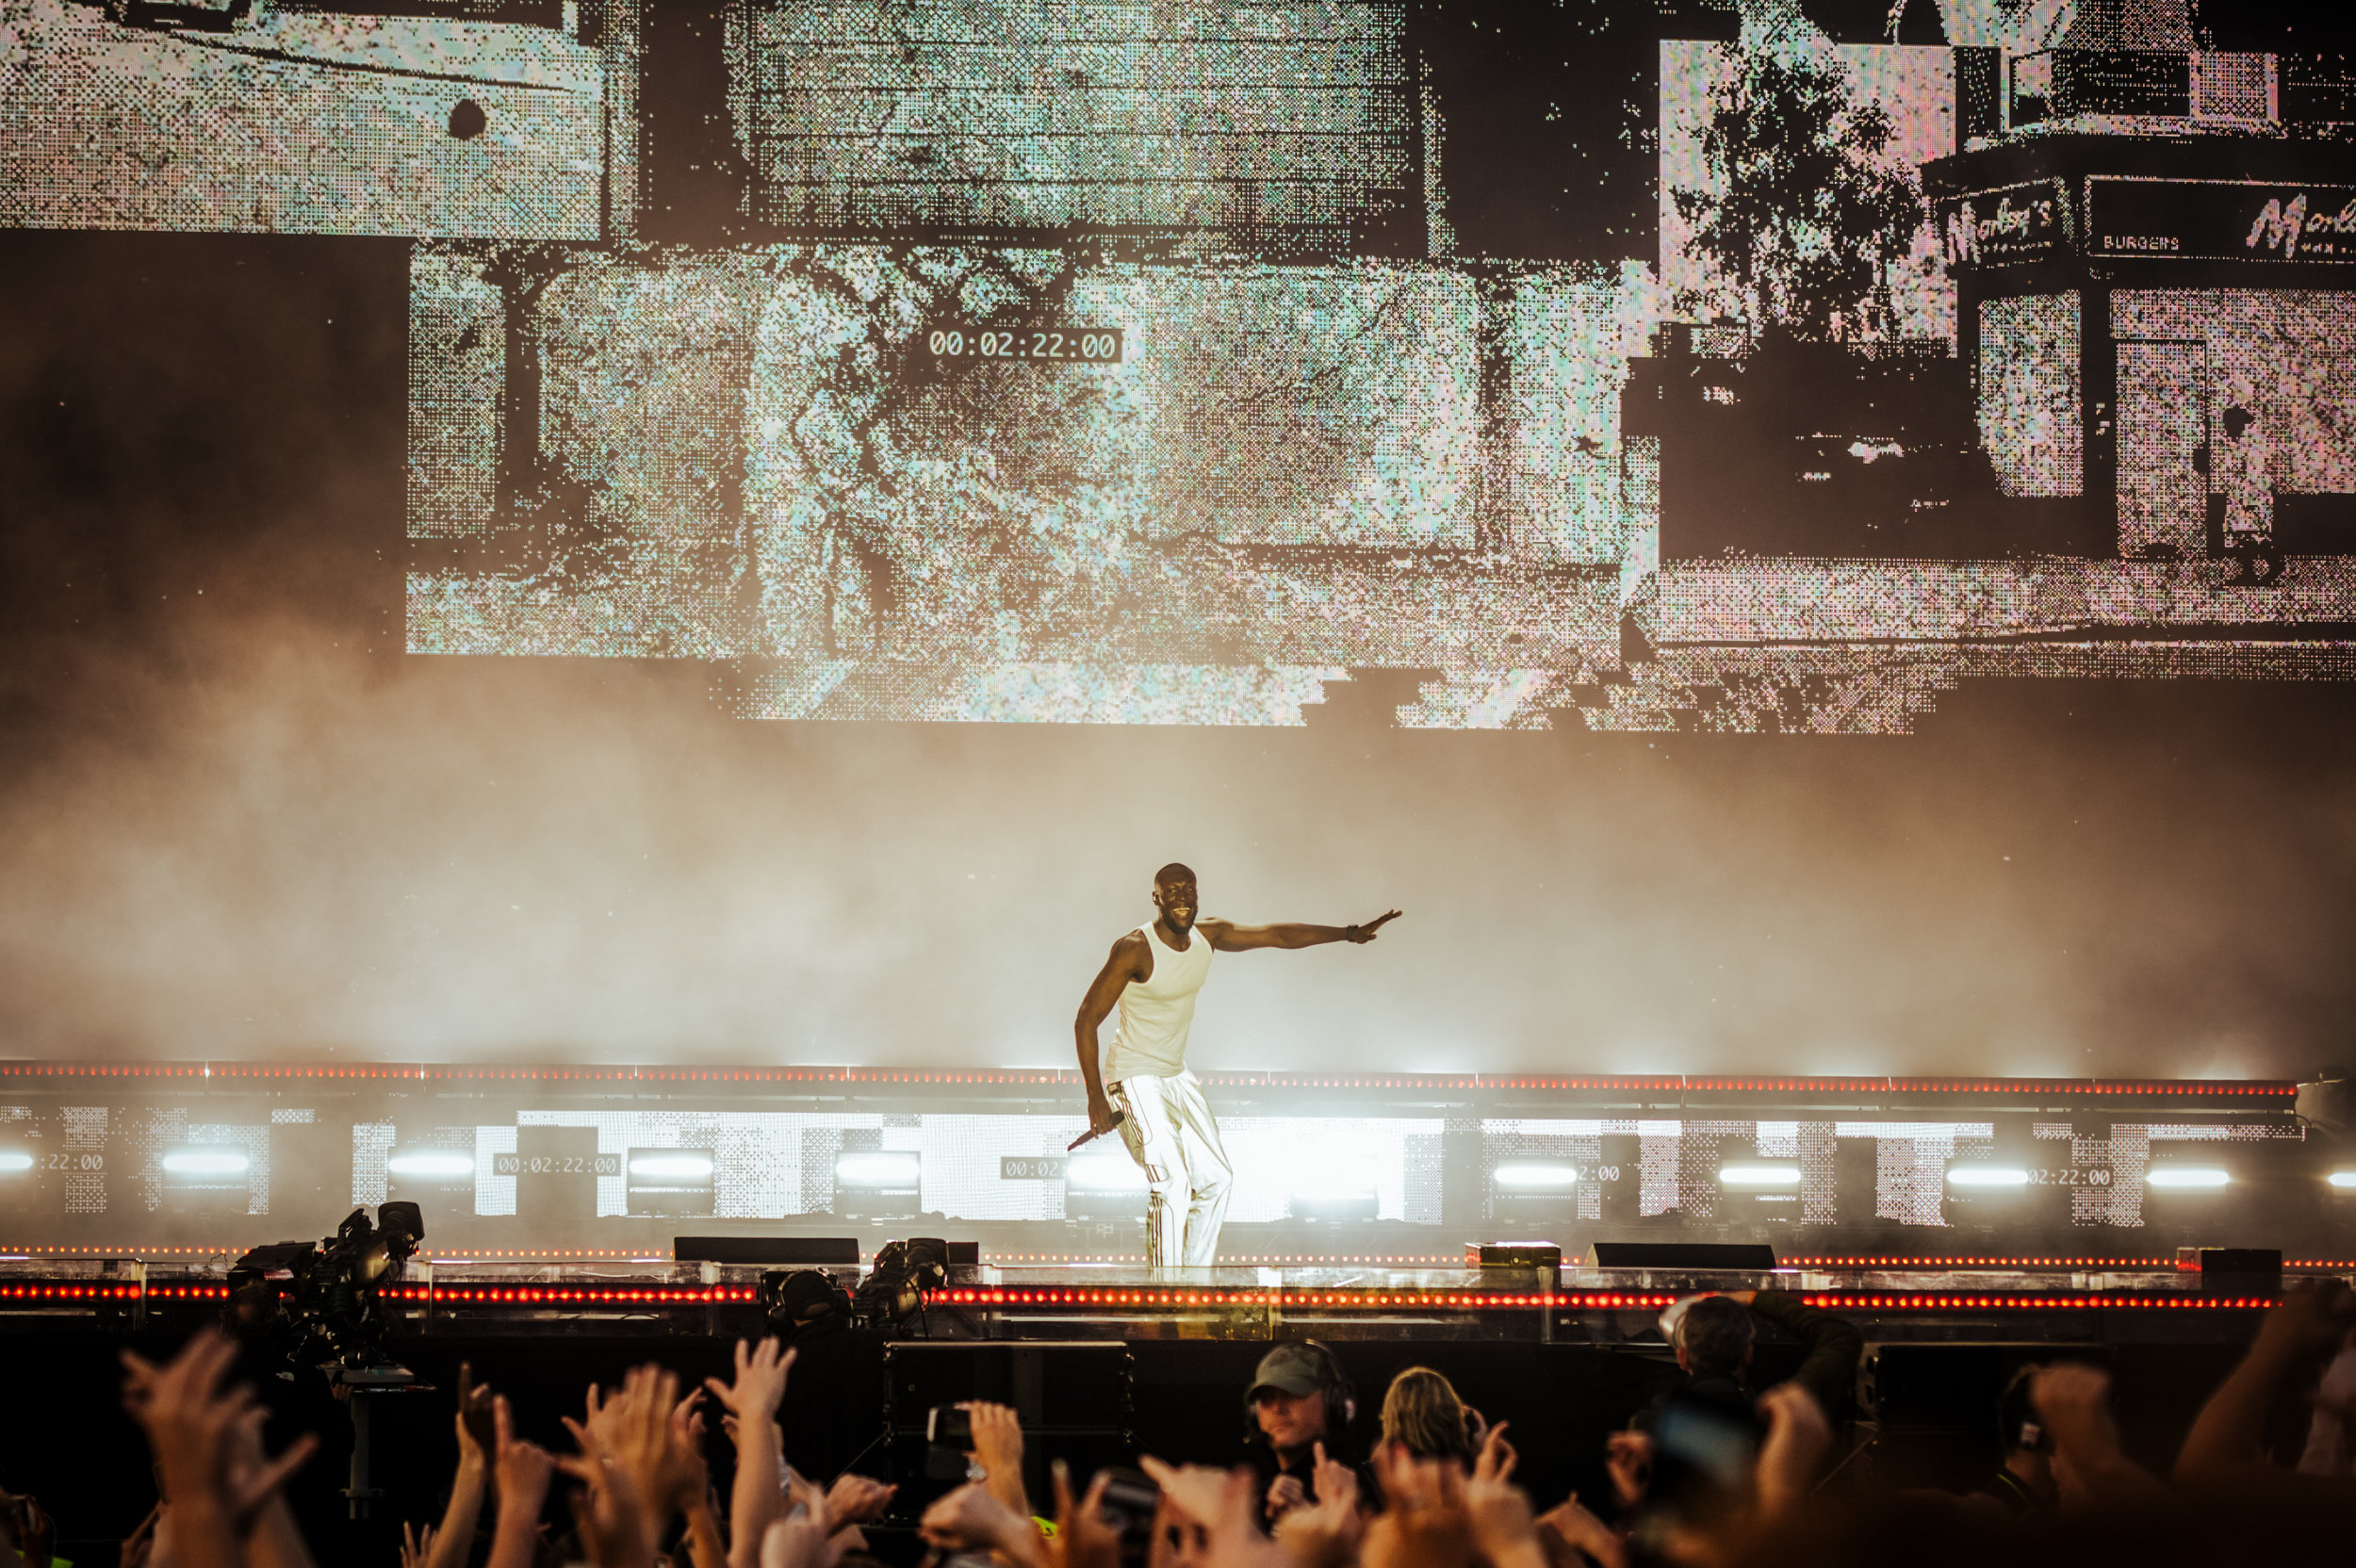 STORMZY PERFORMING AT TRNSMT FESTIVAL 2019  Picture By: Gaelle Beri